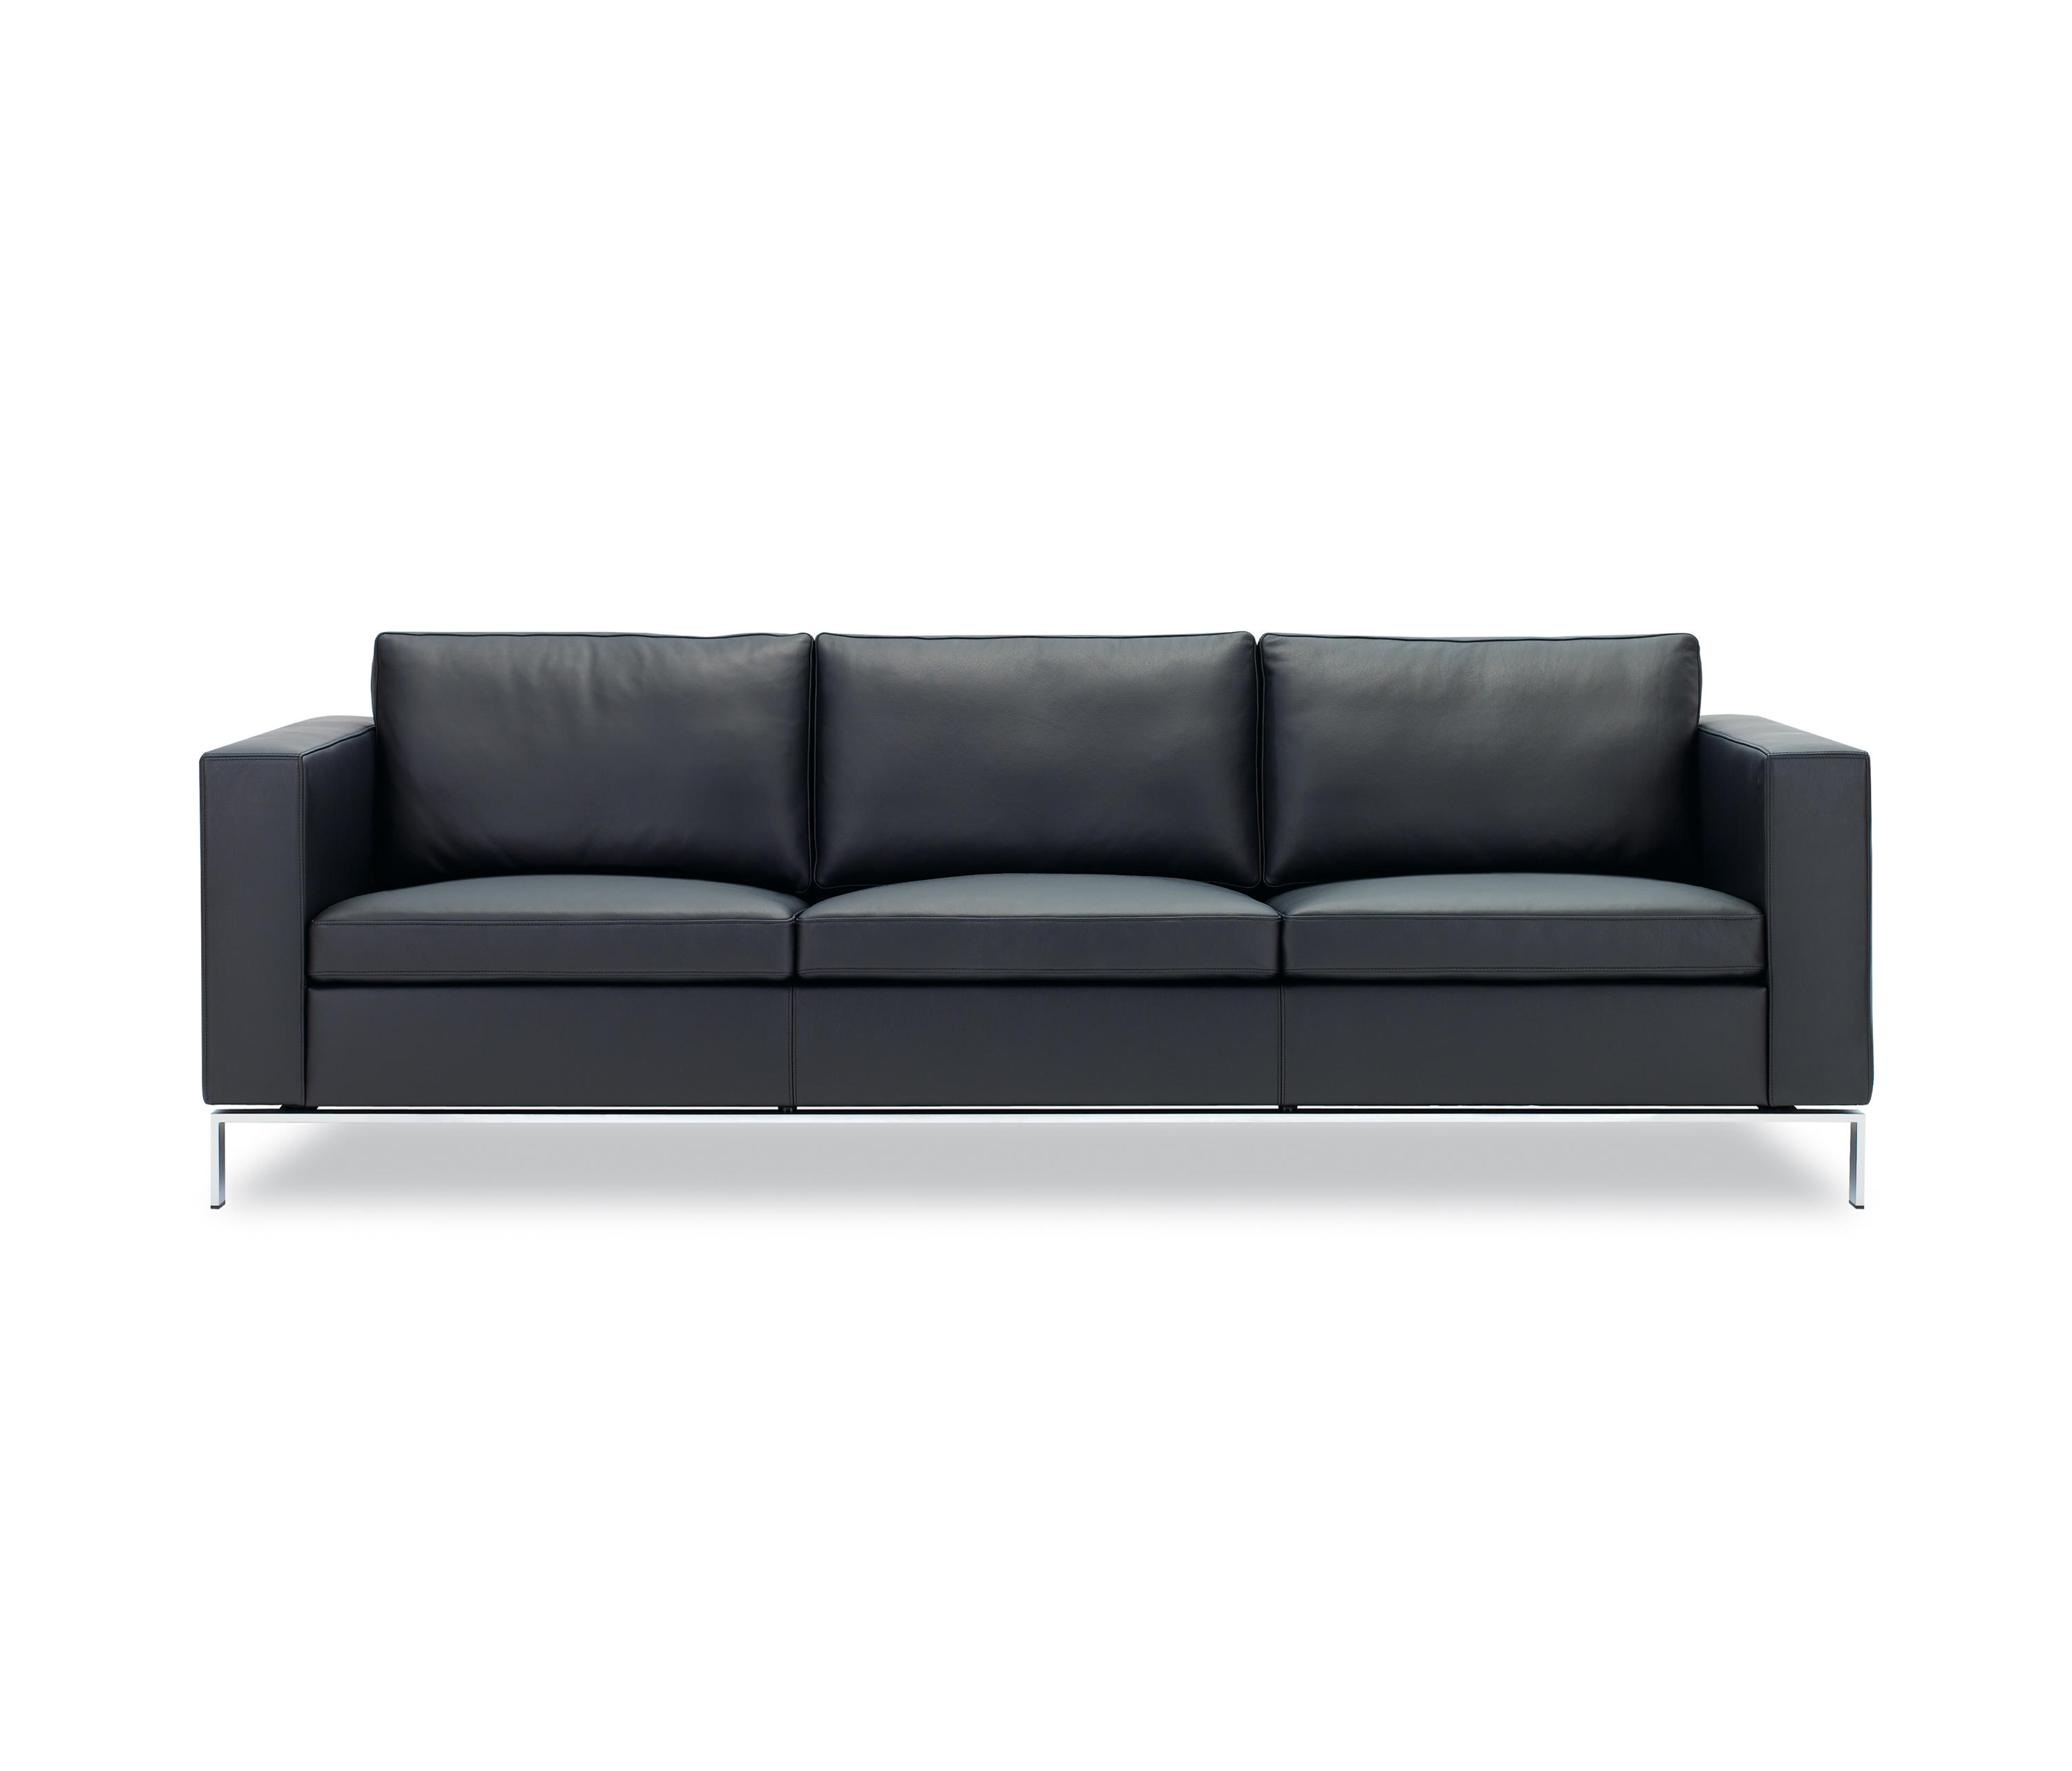 foster 503 sofa loungesofas von walter knoll architonic. Black Bedroom Furniture Sets. Home Design Ideas